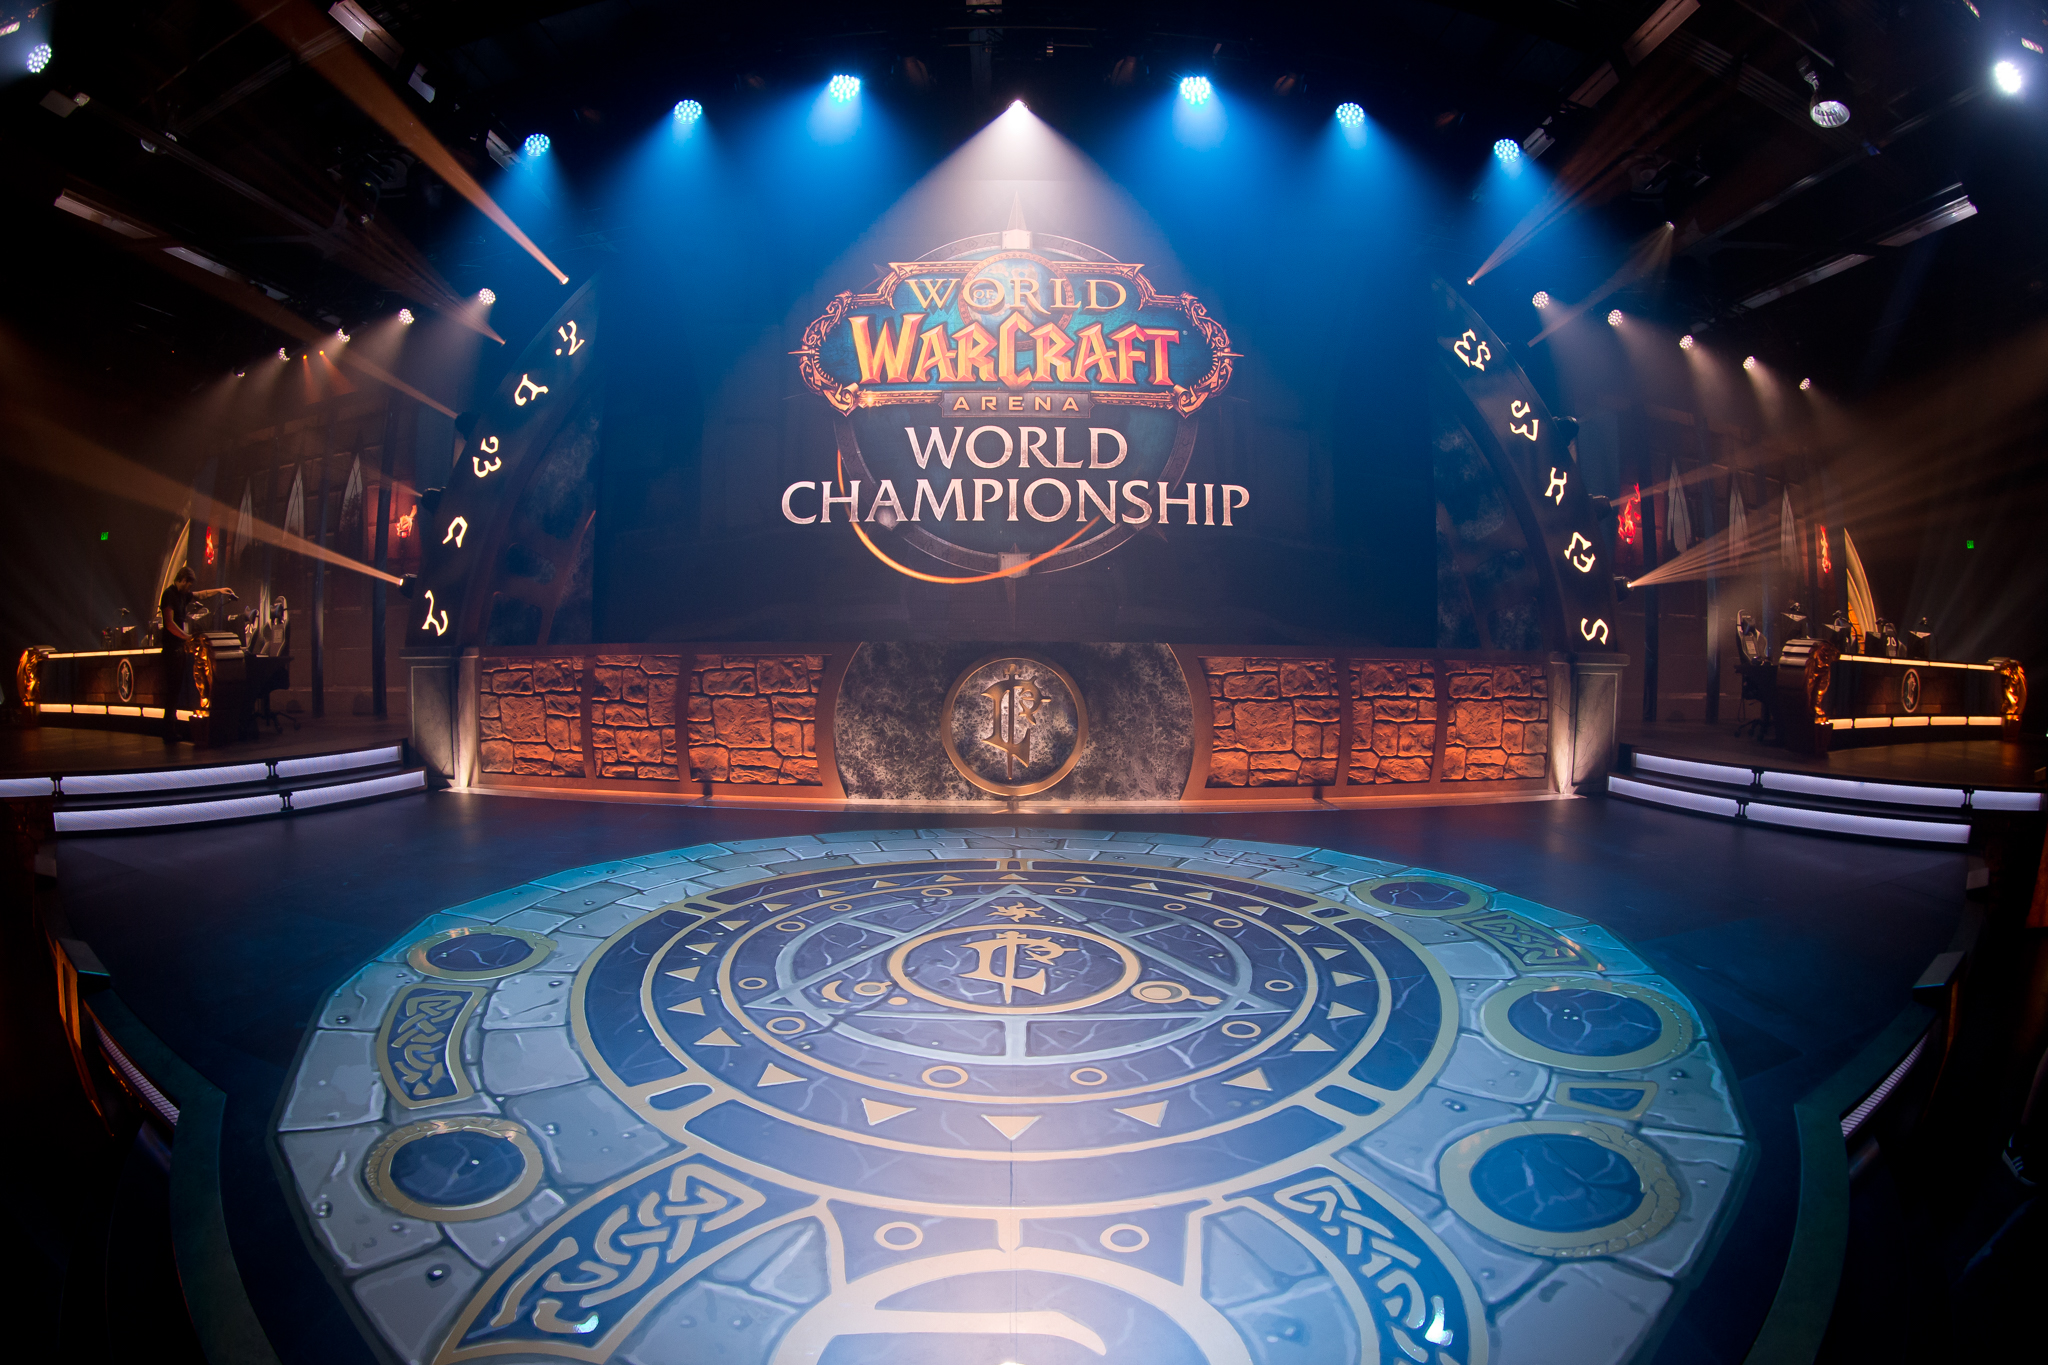 Watch the World of Warcraft APAC Regional Finals this weekend